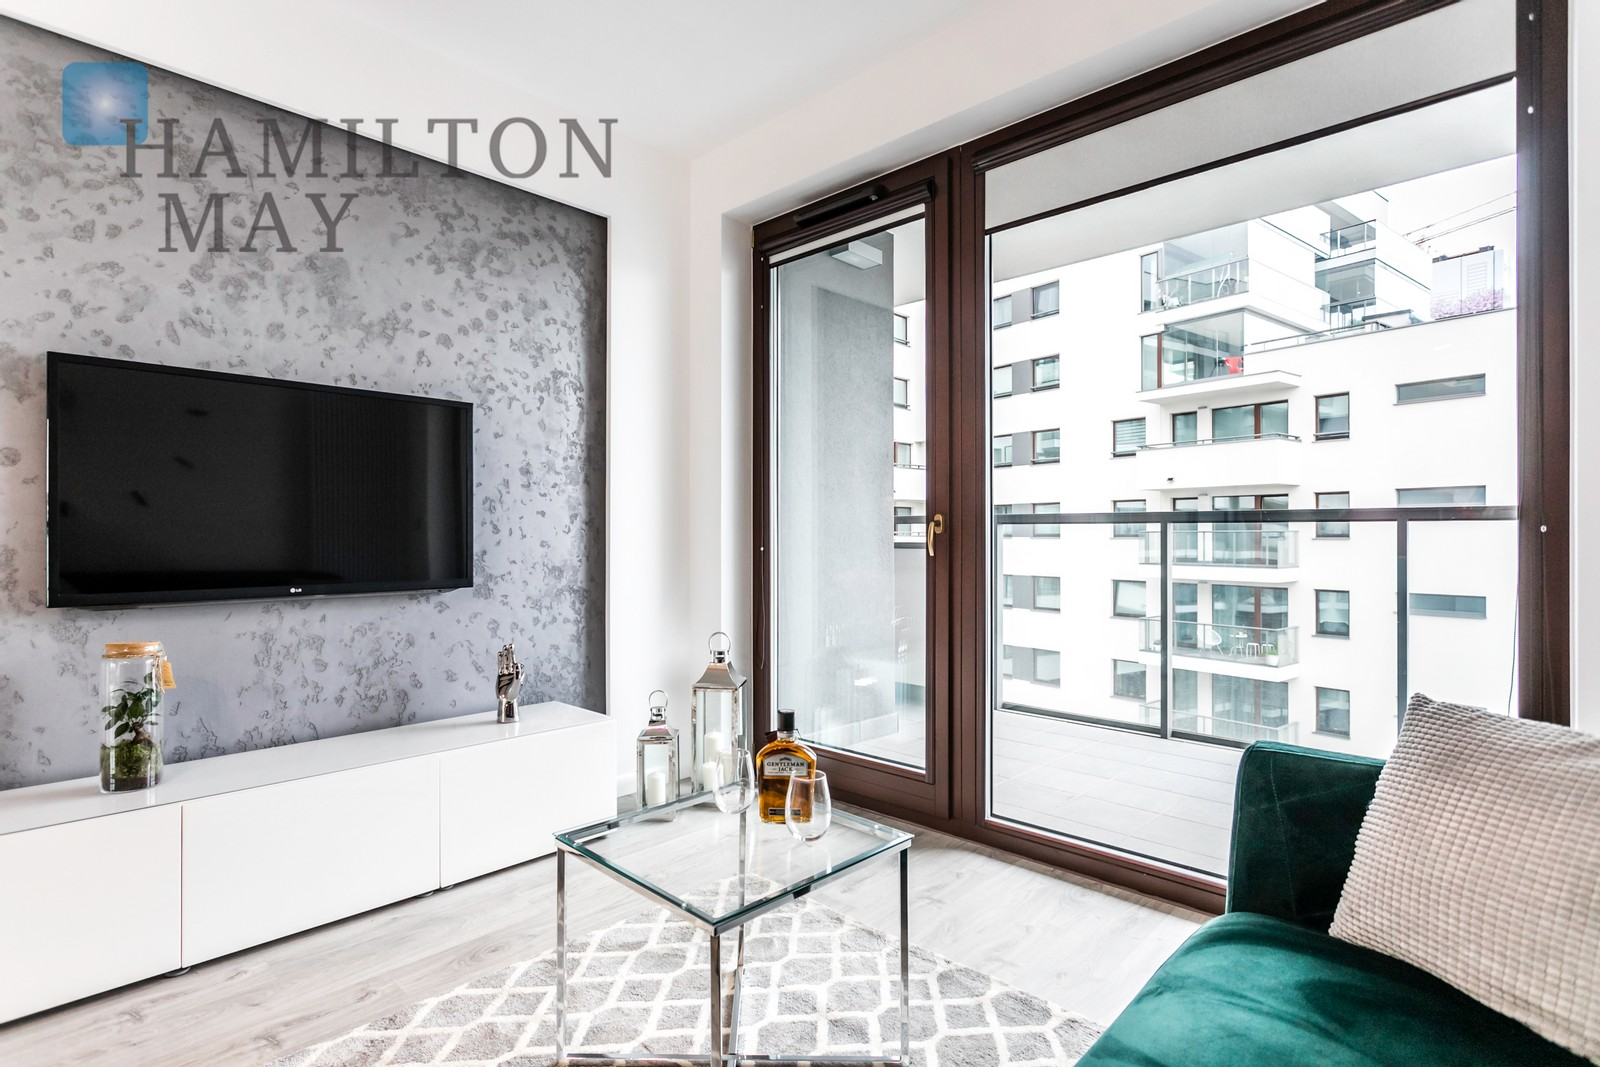 A Modern One Bedroom Apartment At Klopot St Klopot Warszawa For Rental Ref 15643 Hamilton May